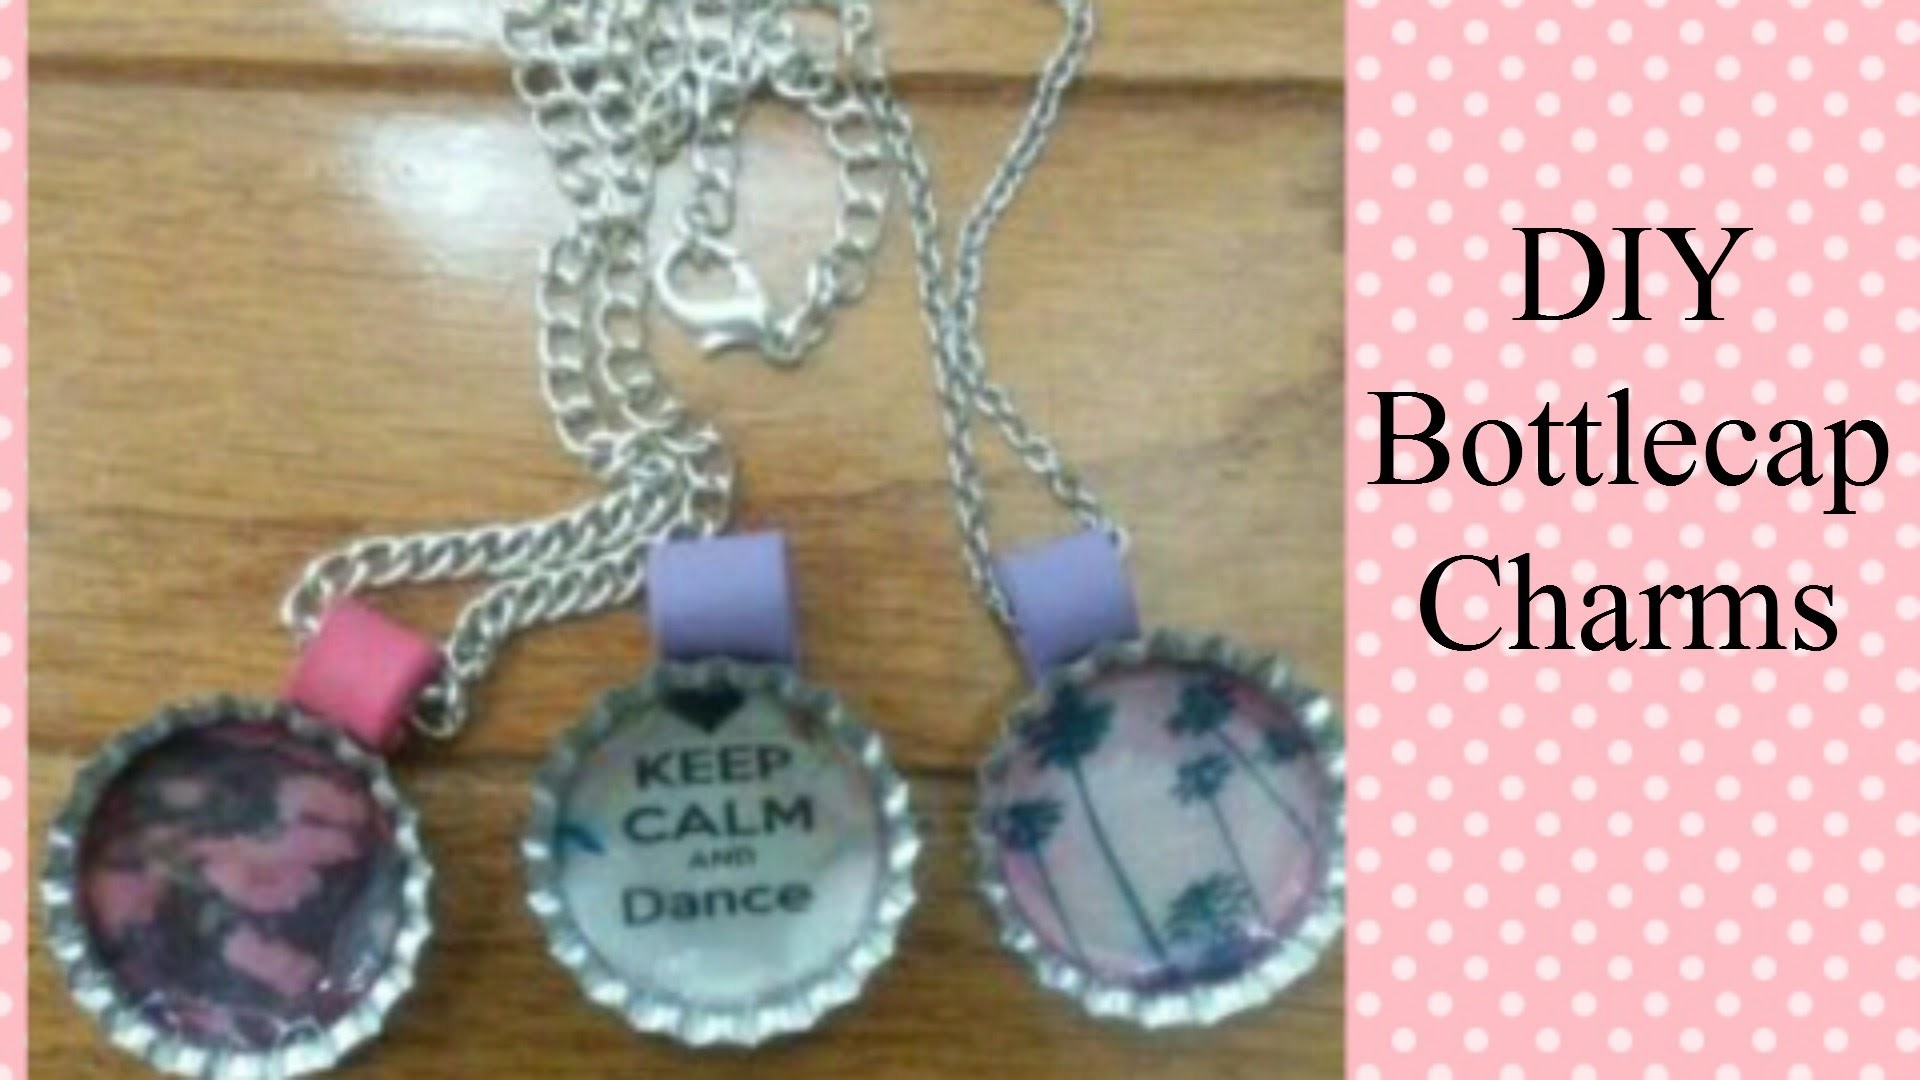 DIY Bottle Cap Charms- With Liquid Glue